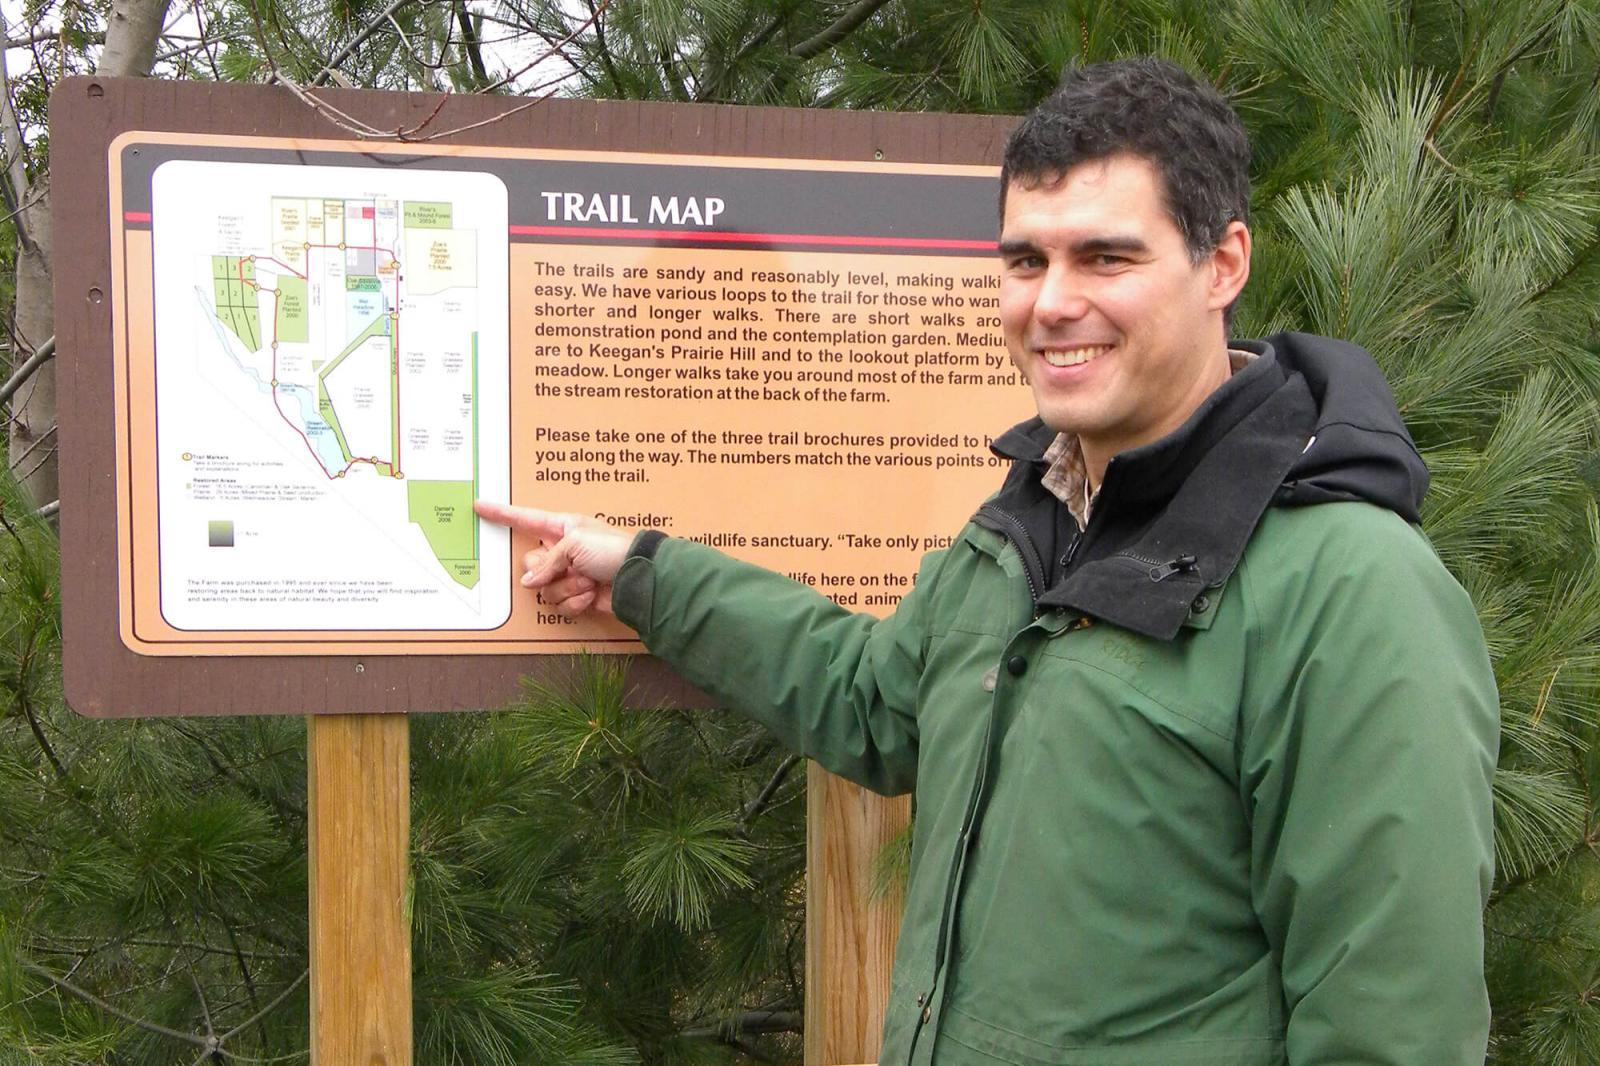 Visitors to the site may take their own tour, or one of the scheduled tour dates. Paul Morris shows map of the trails available on site.